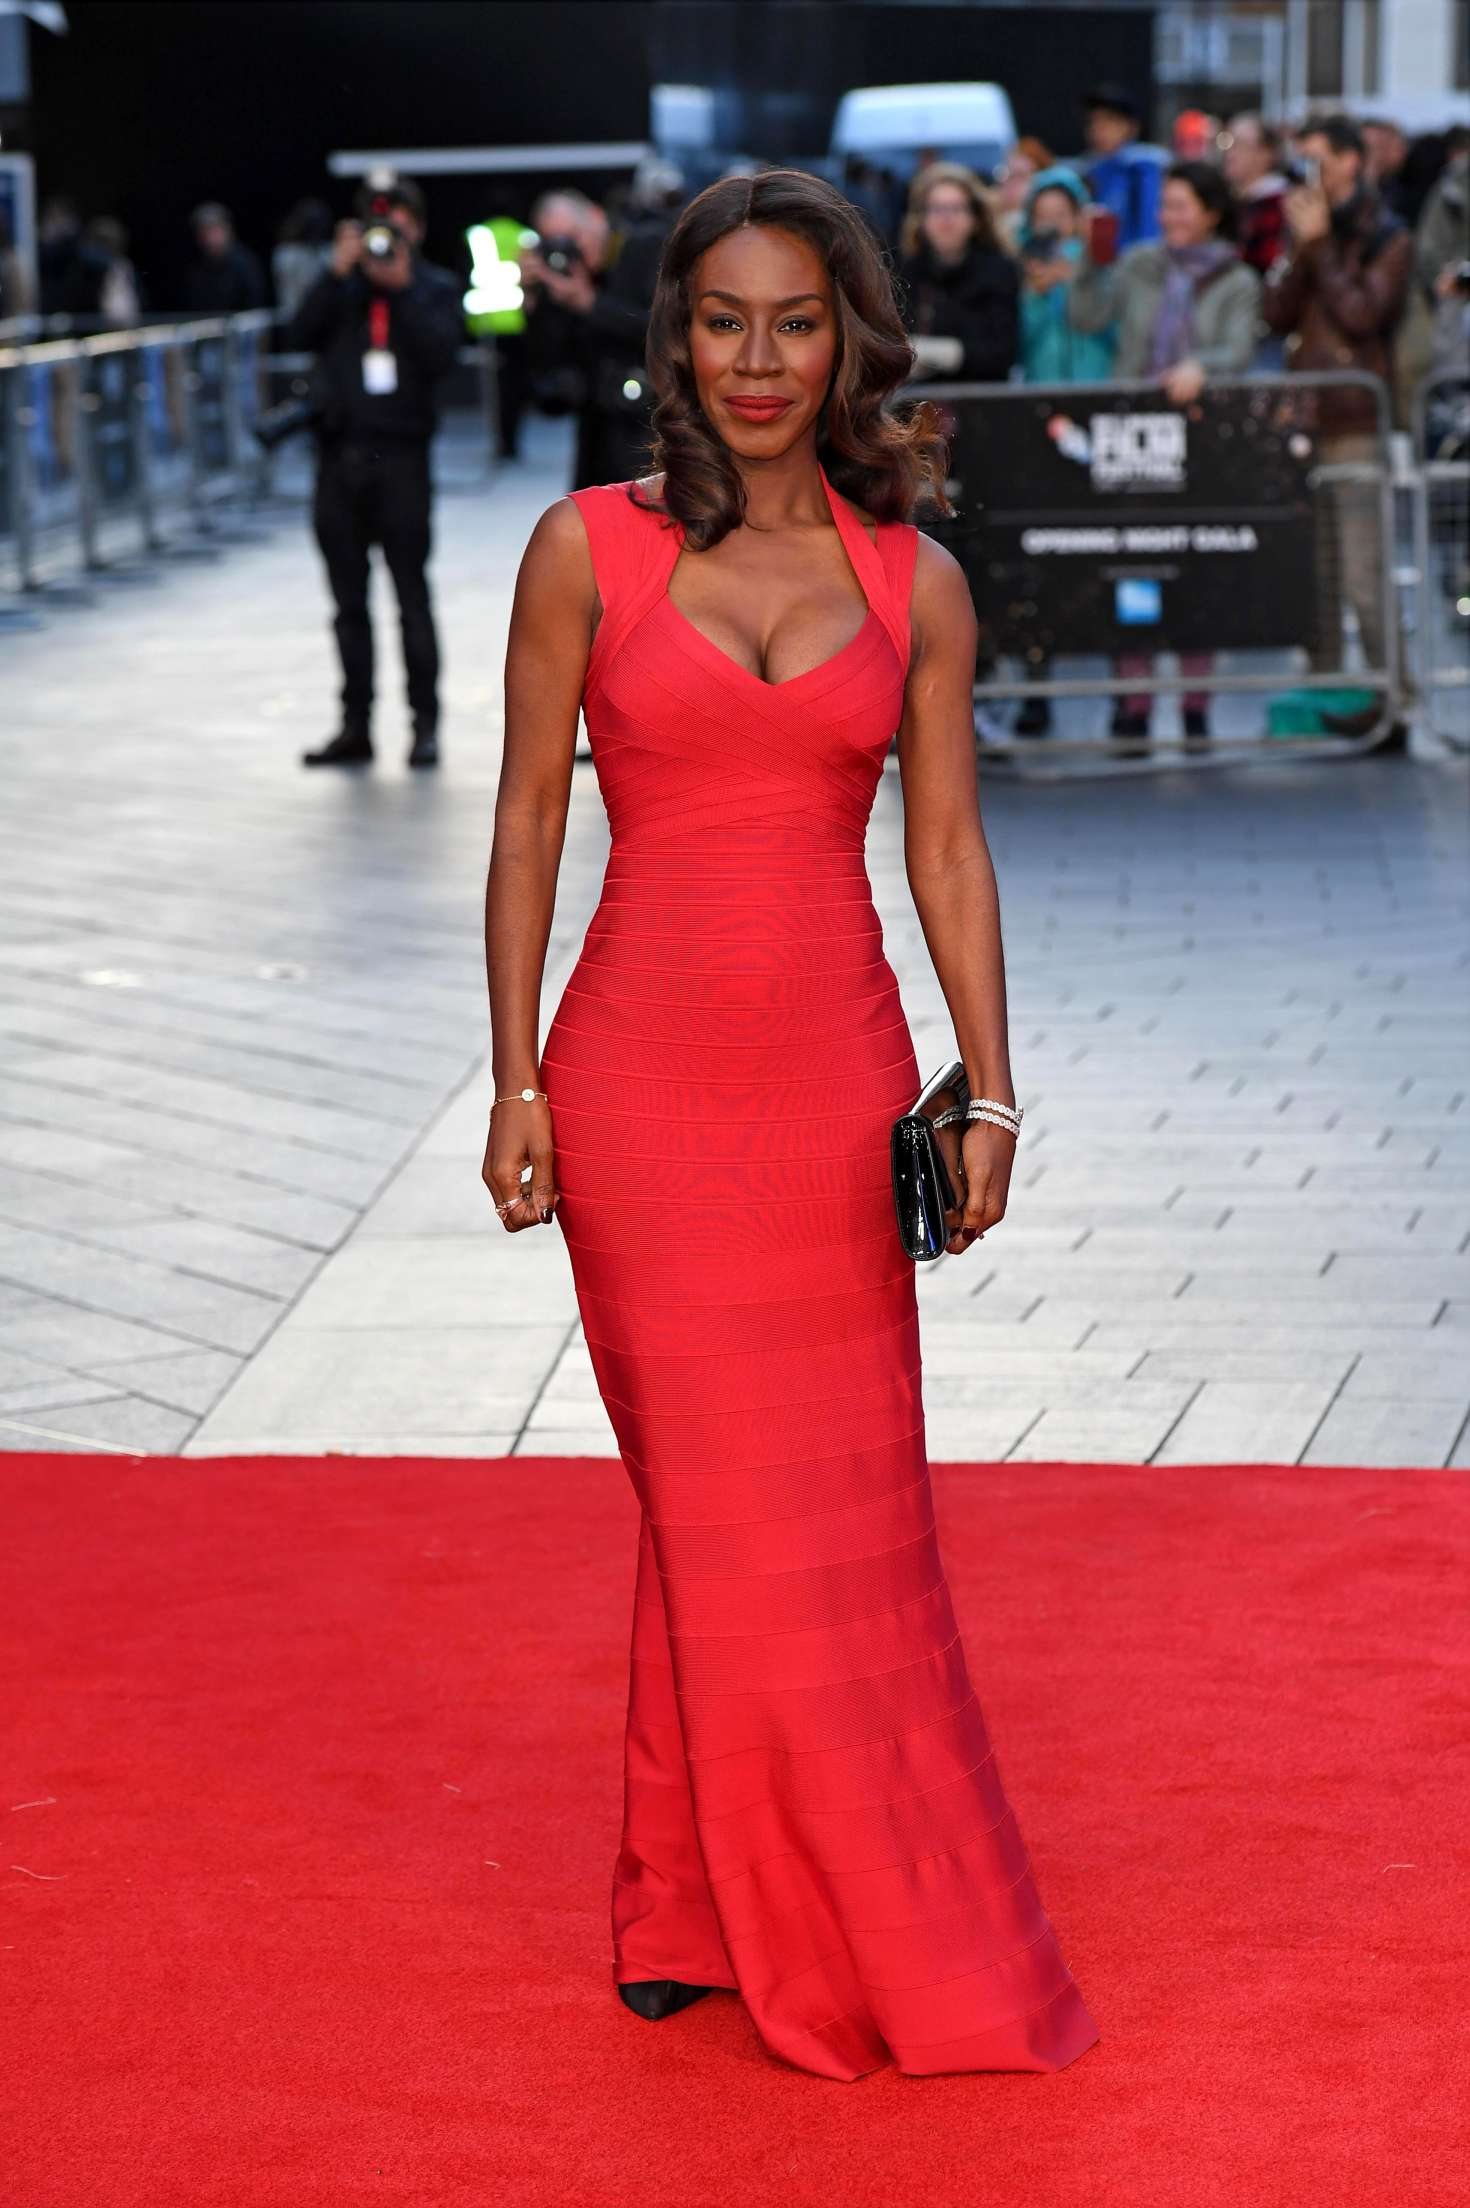 Amma Asante nudes (81 photo), Pussy, Paparazzi, Instagram, braless 2019